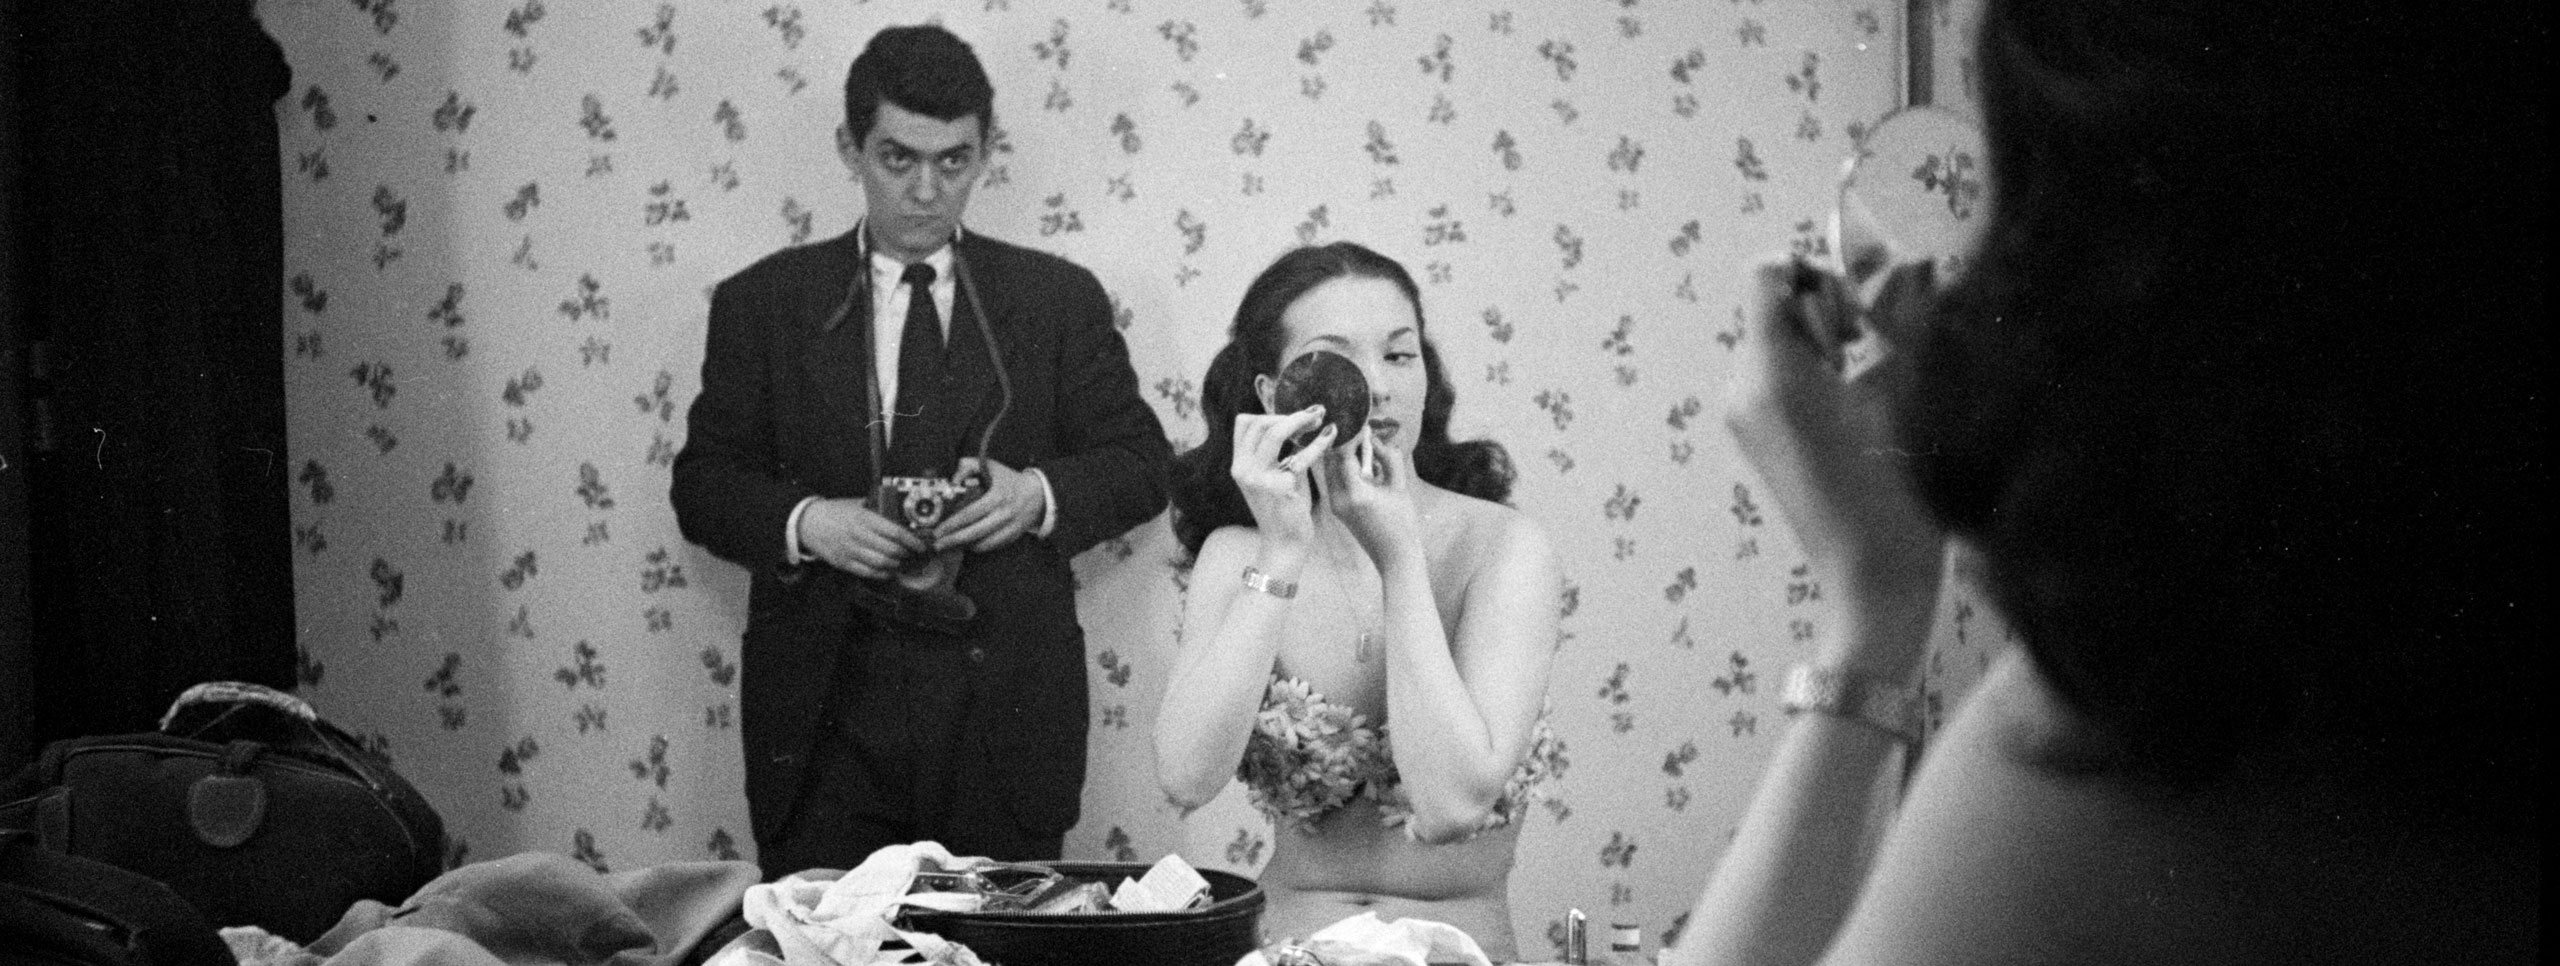 Taken in a mirror's reflection, a woman uses a compact mirror to apply makeup, while photographer stands behind her watching